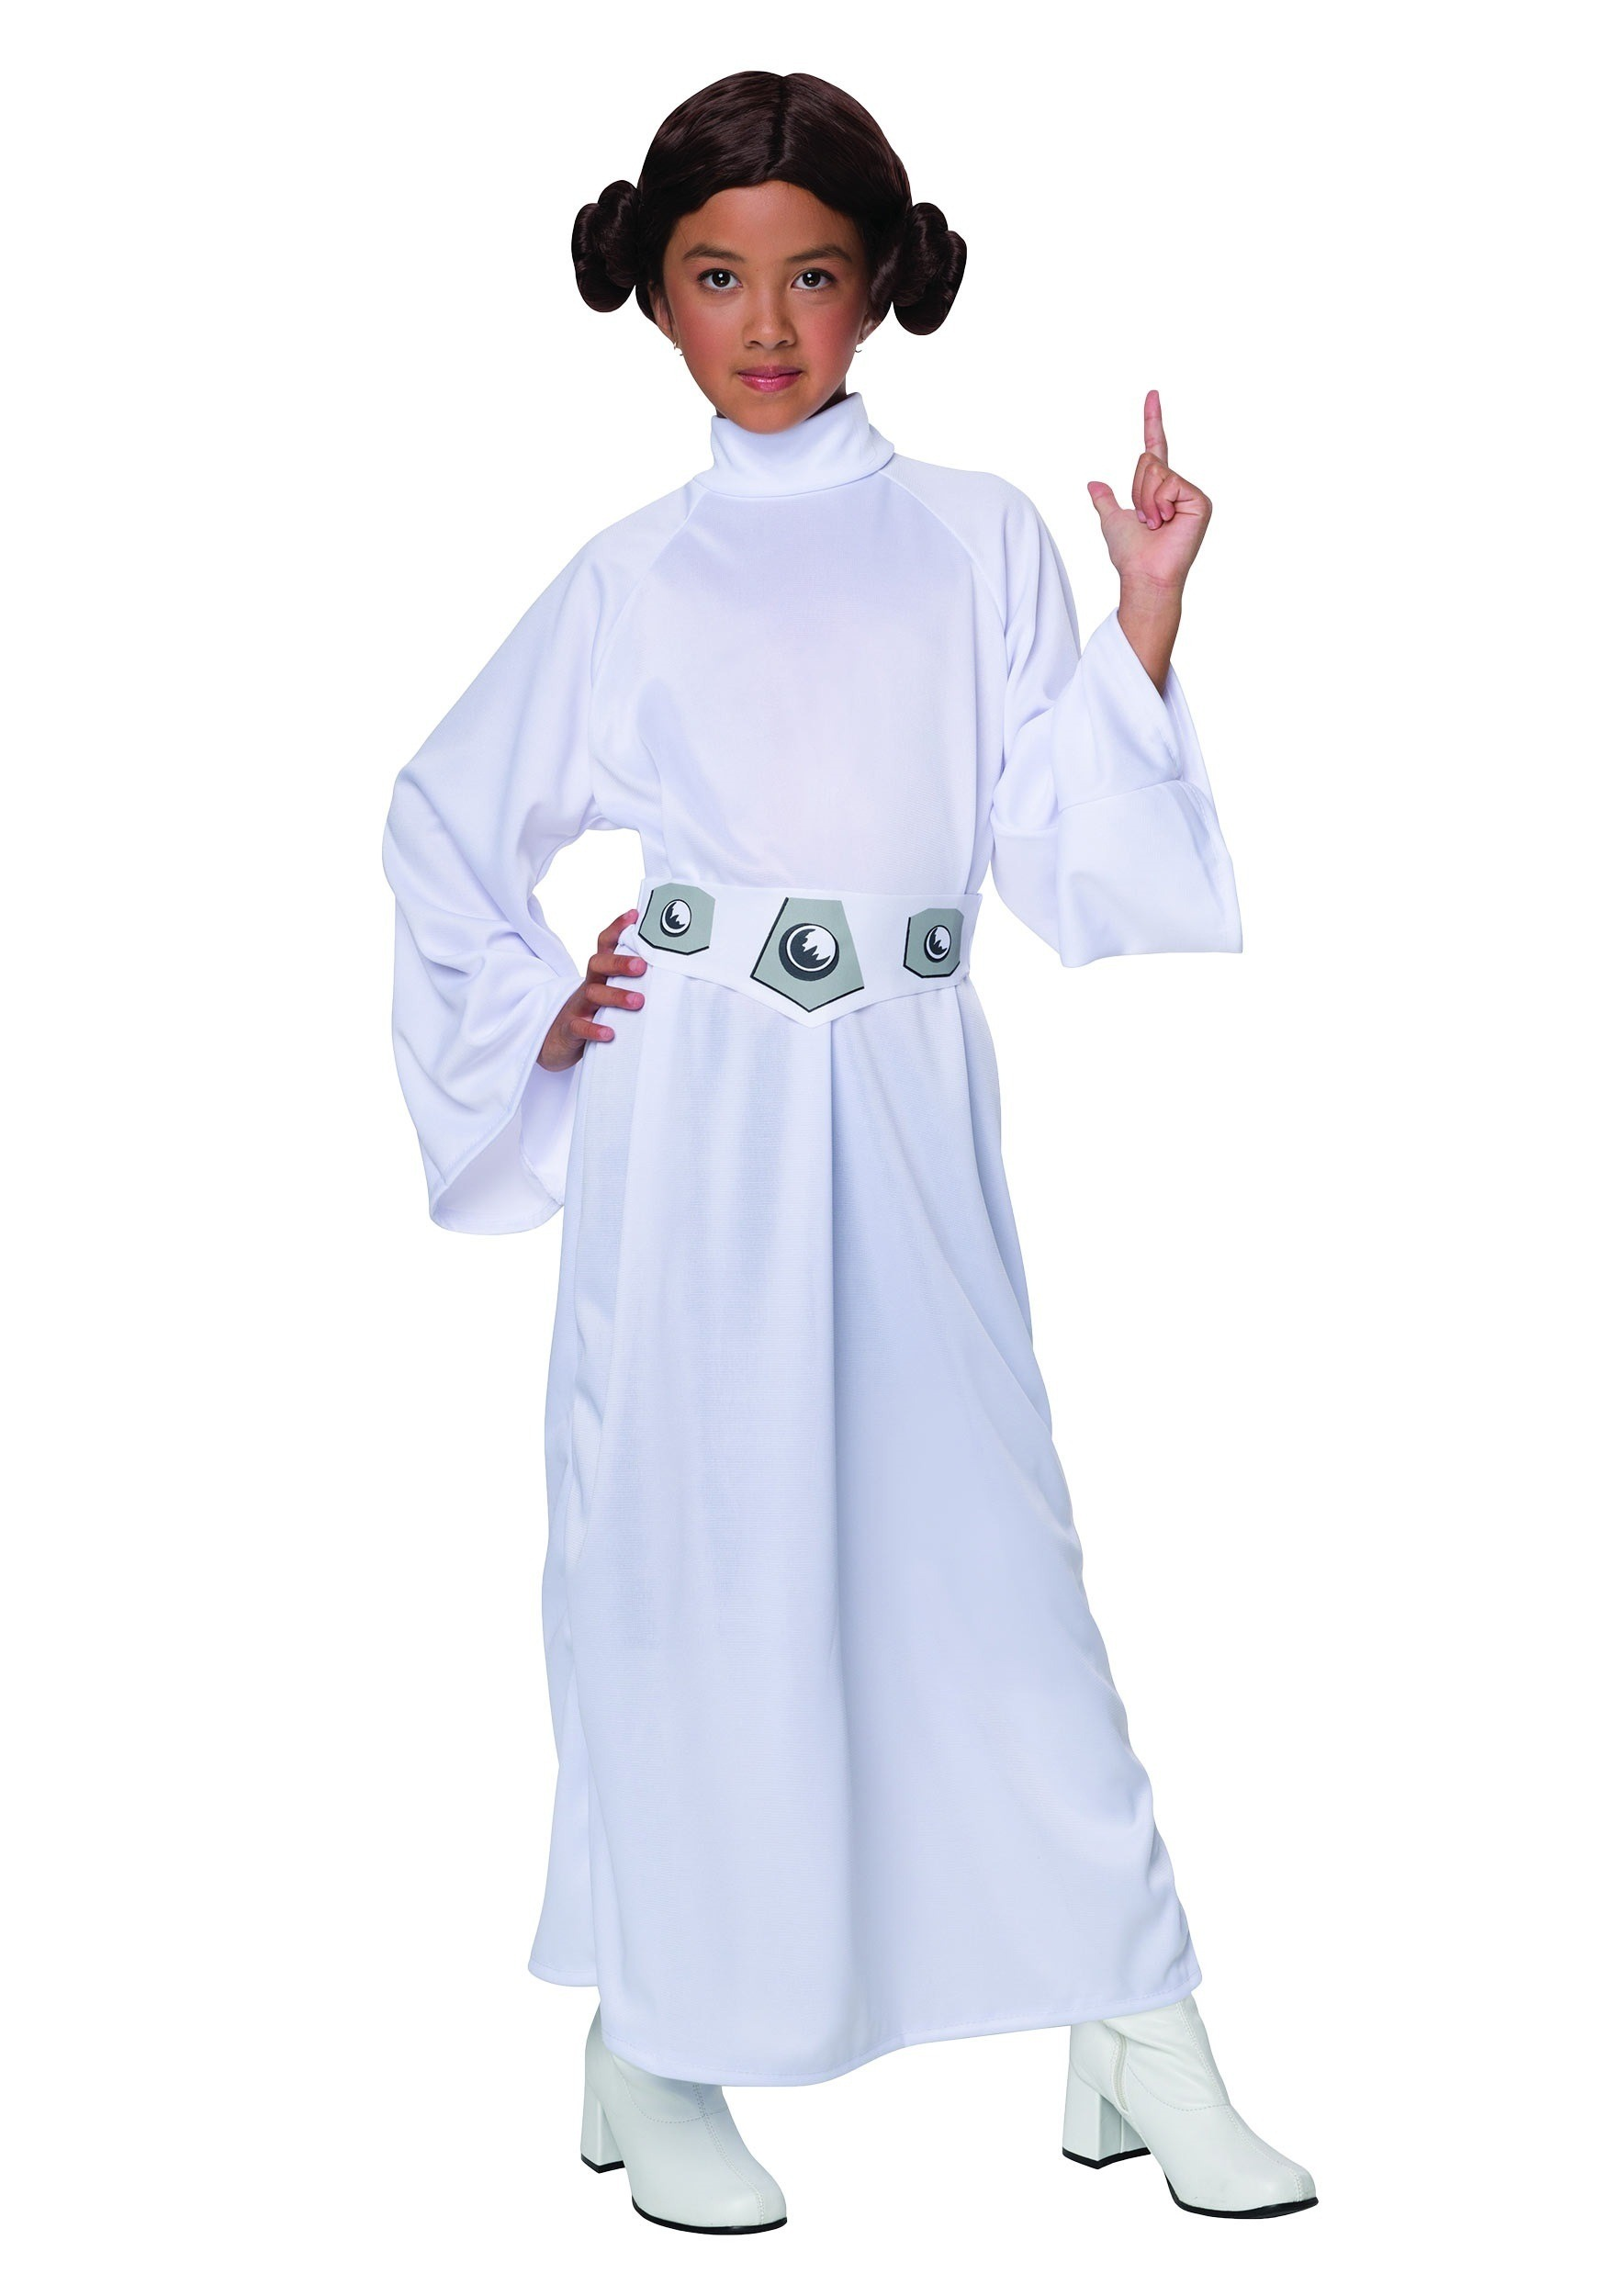 Child Princess Leia Costume  sc 1 st  Buy Star Wars Costumes : princess leia han solo costumes  - Germanpascual.Com